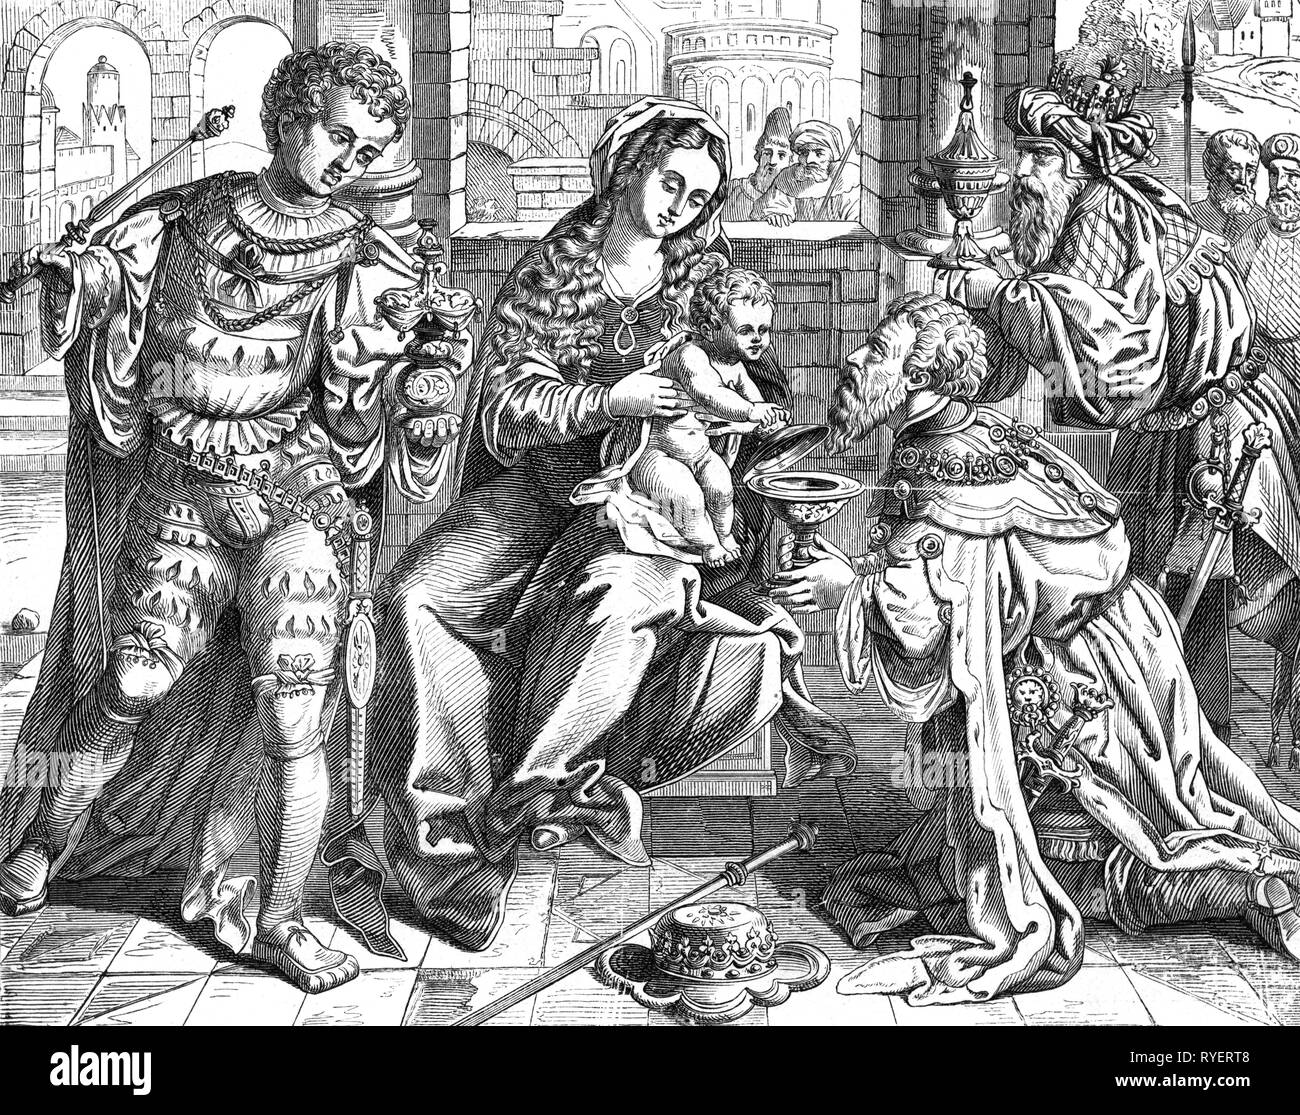 religion, Christianity, Three Kings, 'THree Wise Men', wood engraving, 19th century, graphic, graphics, half-length, half length, standing, sitting, sit, kneel, kneeling, Mary, Madonna, Jesus Christ, the infant Jesus, baby Jesus, divine infant, child, children, kid, kids, presents, present, presenting, give, giving, given, gives, gave, gold, incense, frankincense, Kaspar, Melchior, Balthazar, nativity, nativities, Messiah, Saviour, Redeemer, myrrh, religion, religions, king, kings, wise man, wise woman, sage, wise men, wise women, sages, historic, Additional-Rights-Clearance-Info-Not-Available - Stock Image